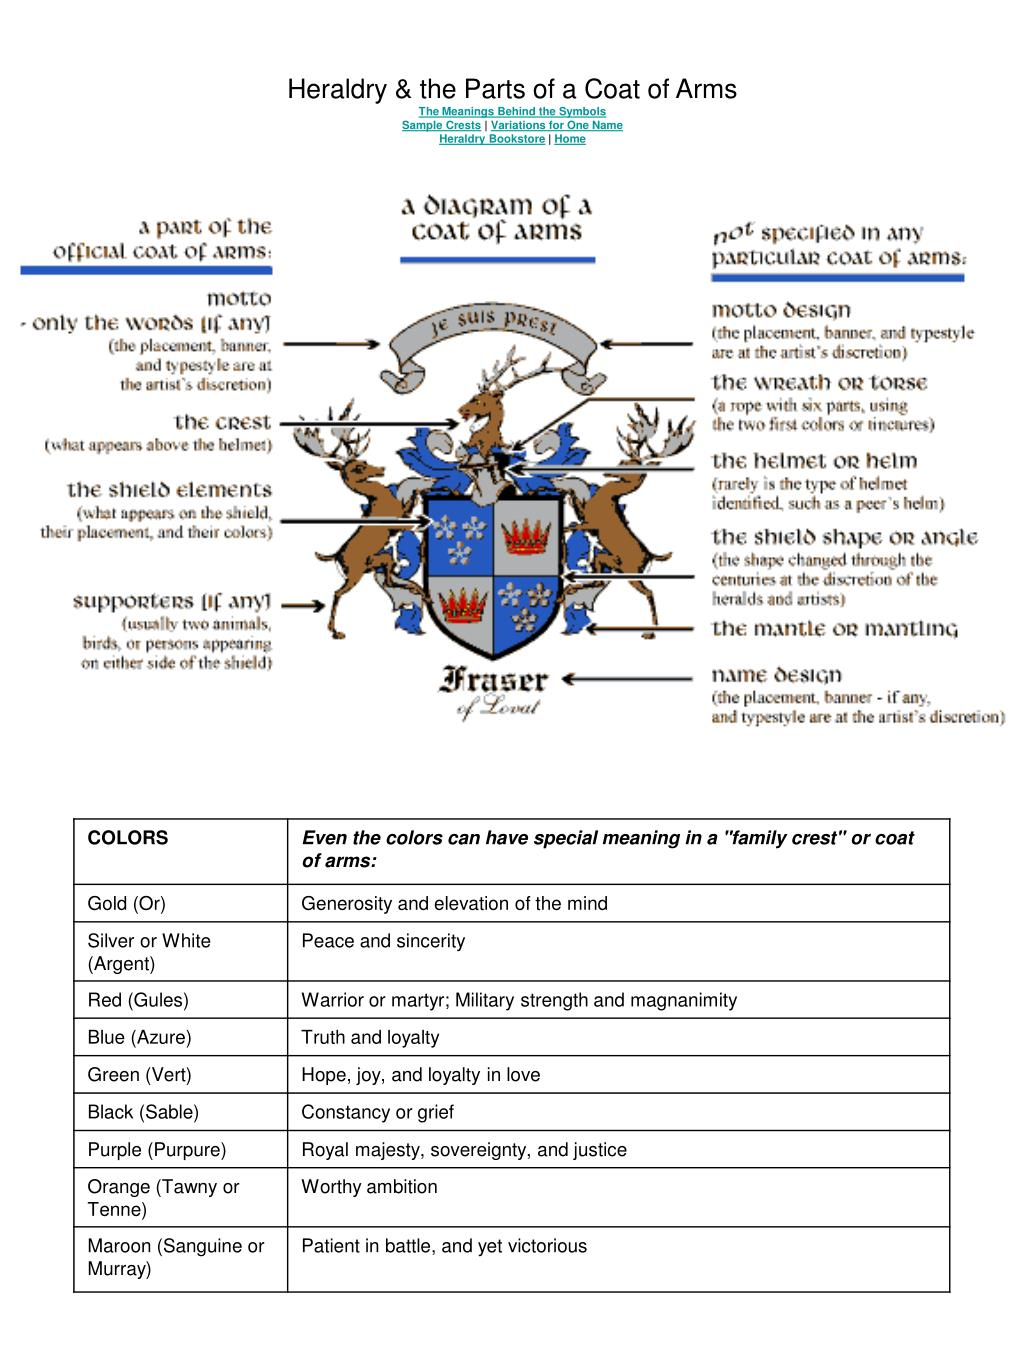 Ppt Heraldry The Parts Of A Coat Of Arms The Meanings Behind The